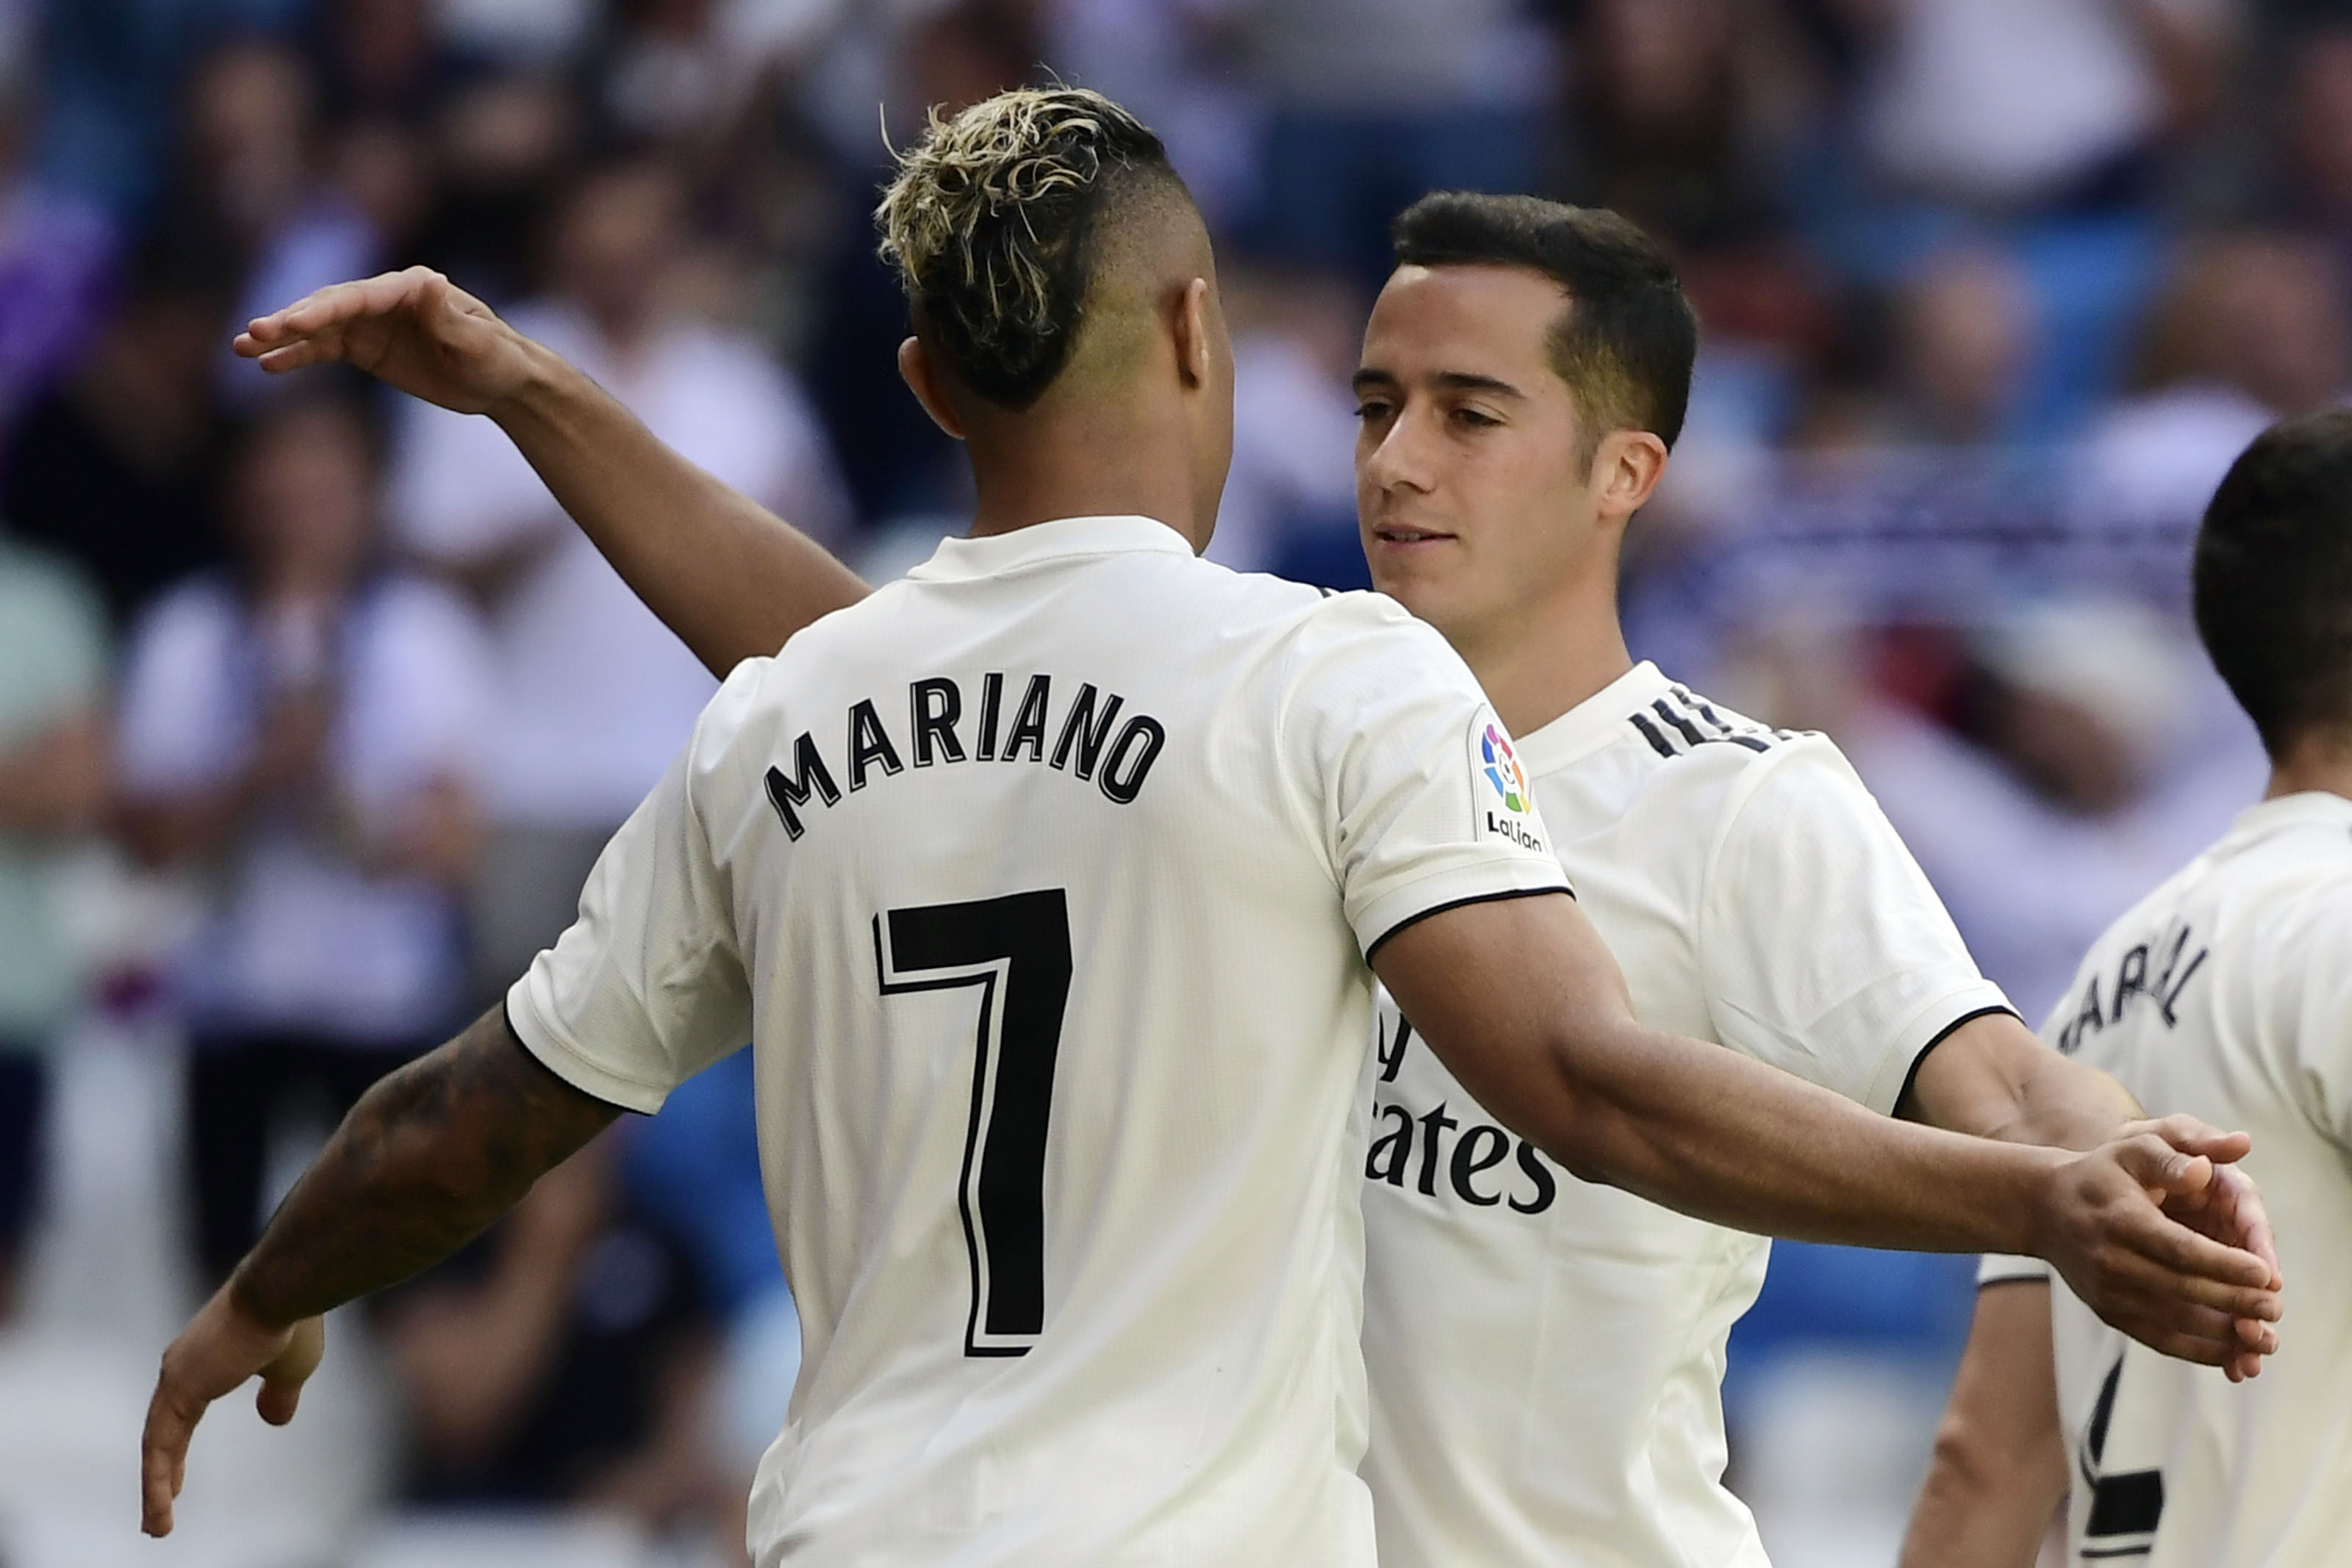 Diaz and Vazquez were linked with Arsenal. (Photo courtesy: AFP/Getty)